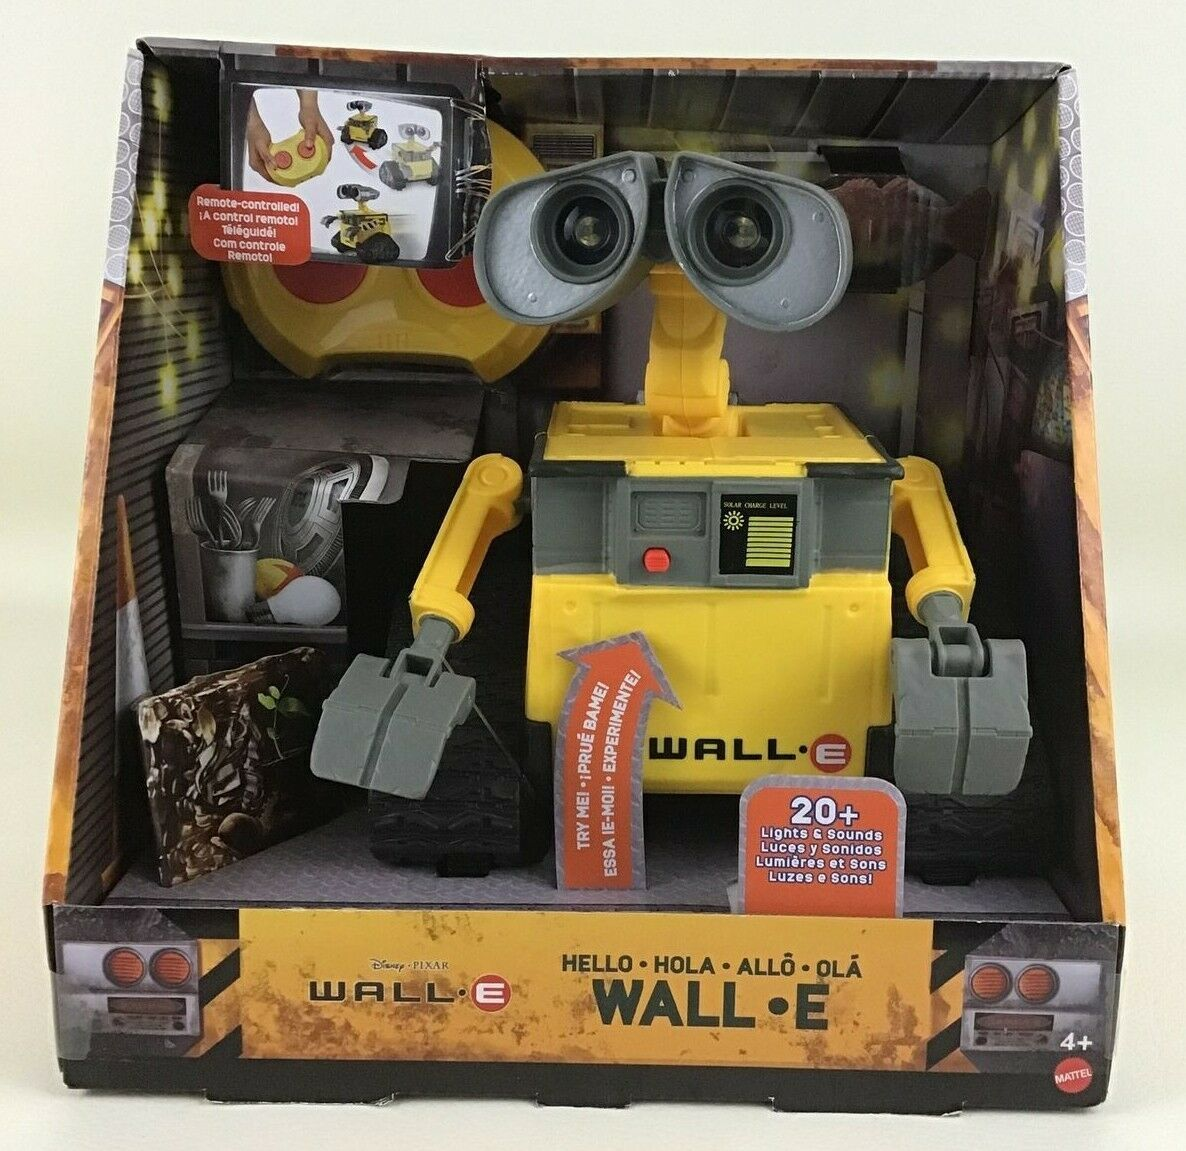 Primary image for Hello Wall E RC Remote Control Toy Light up Sounds Mattel Disney Pixar 2019 New